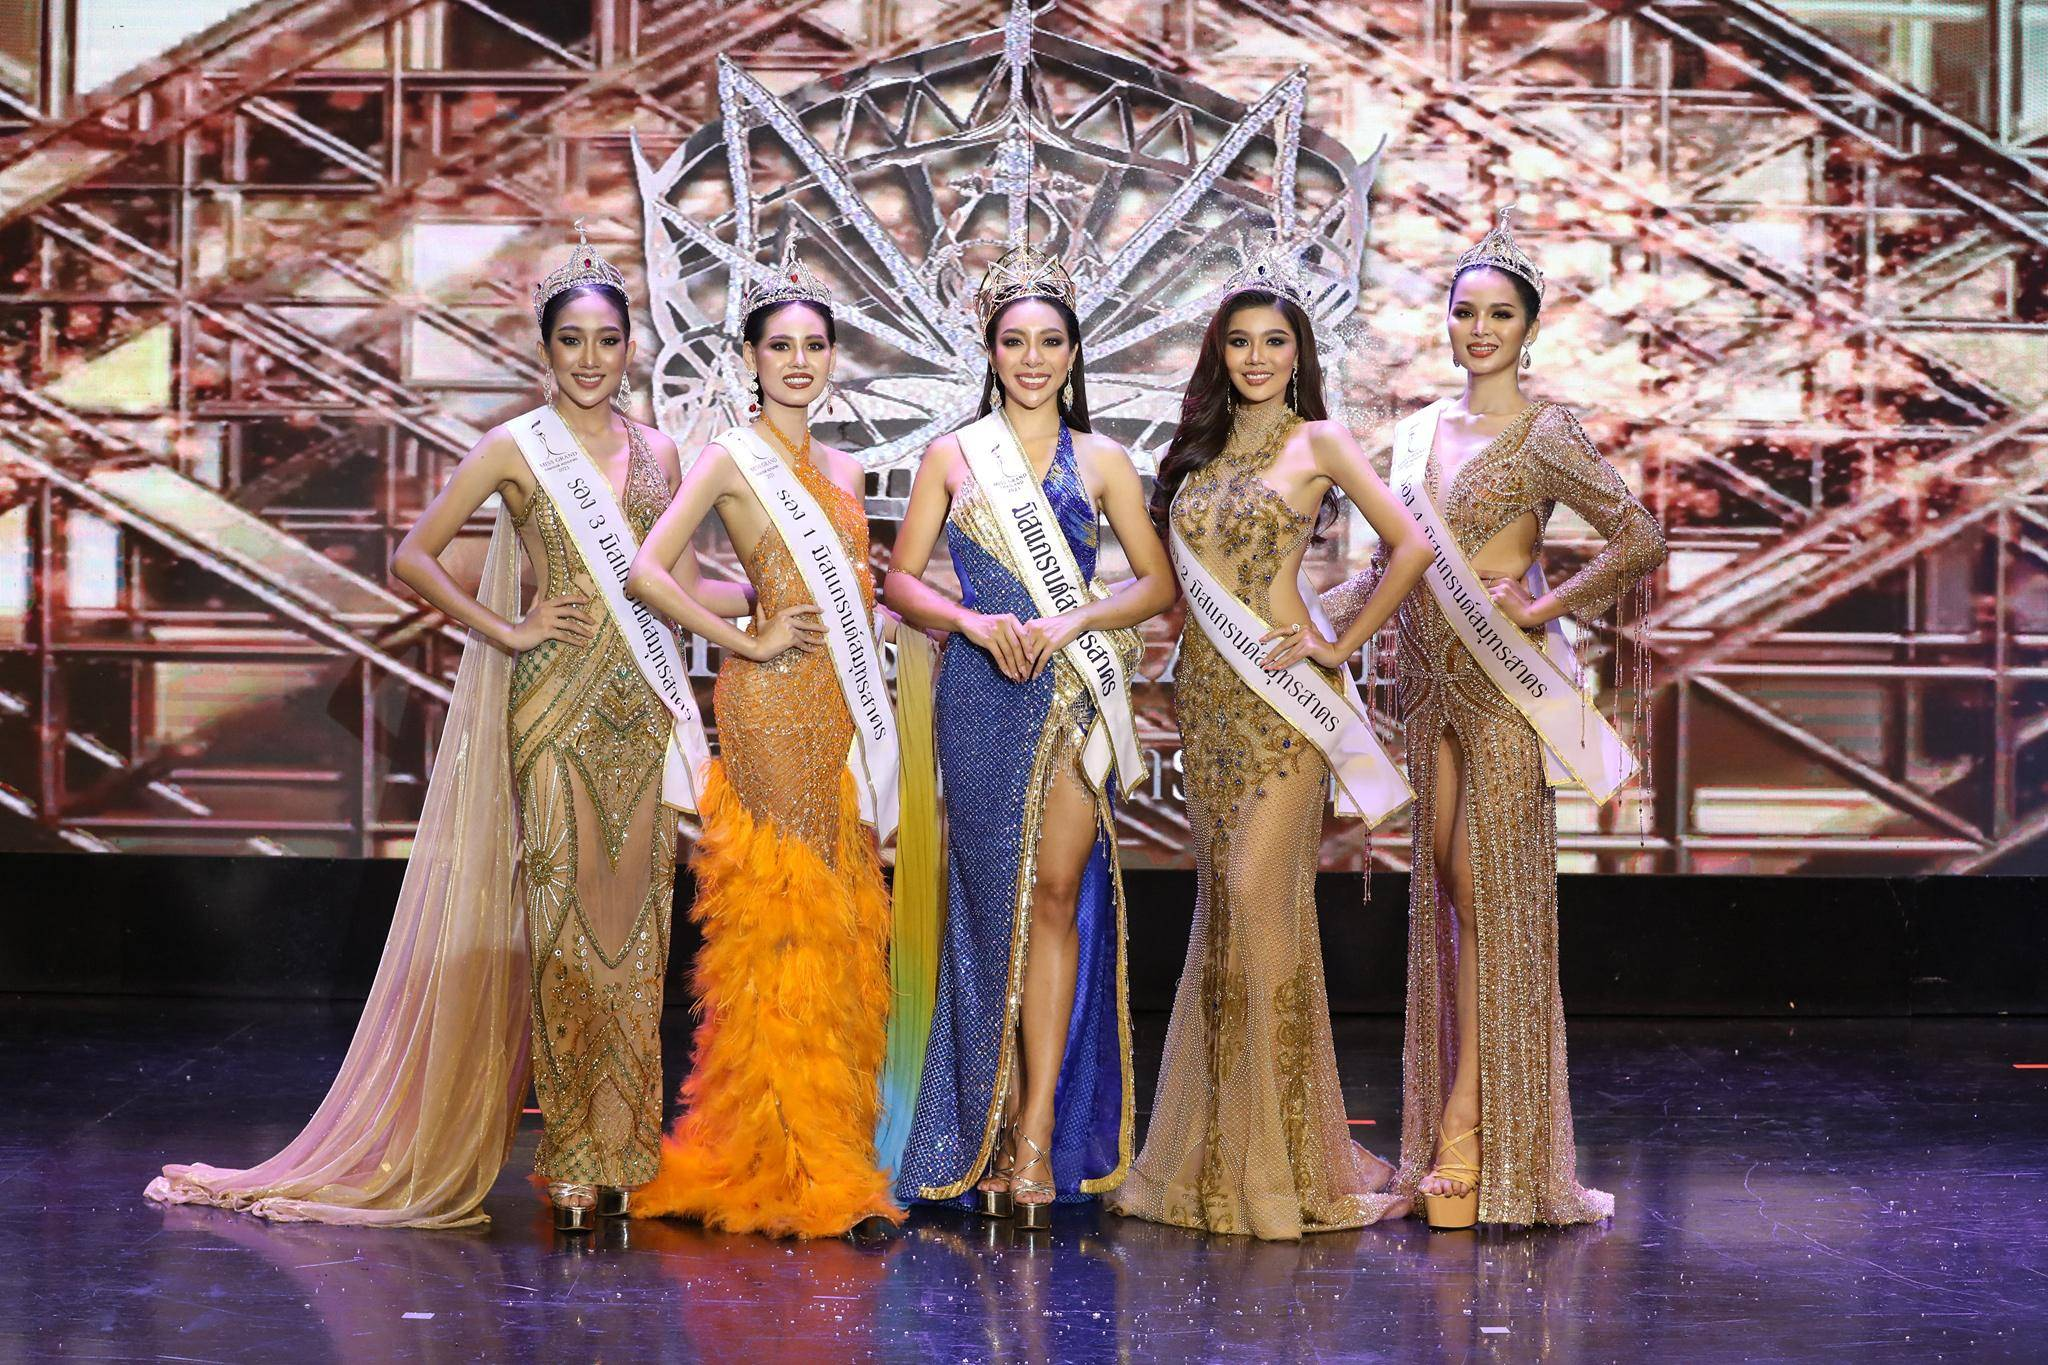 Thai beauty queens could face criminal charges for violating Covid rules -  News | Khaleej Times